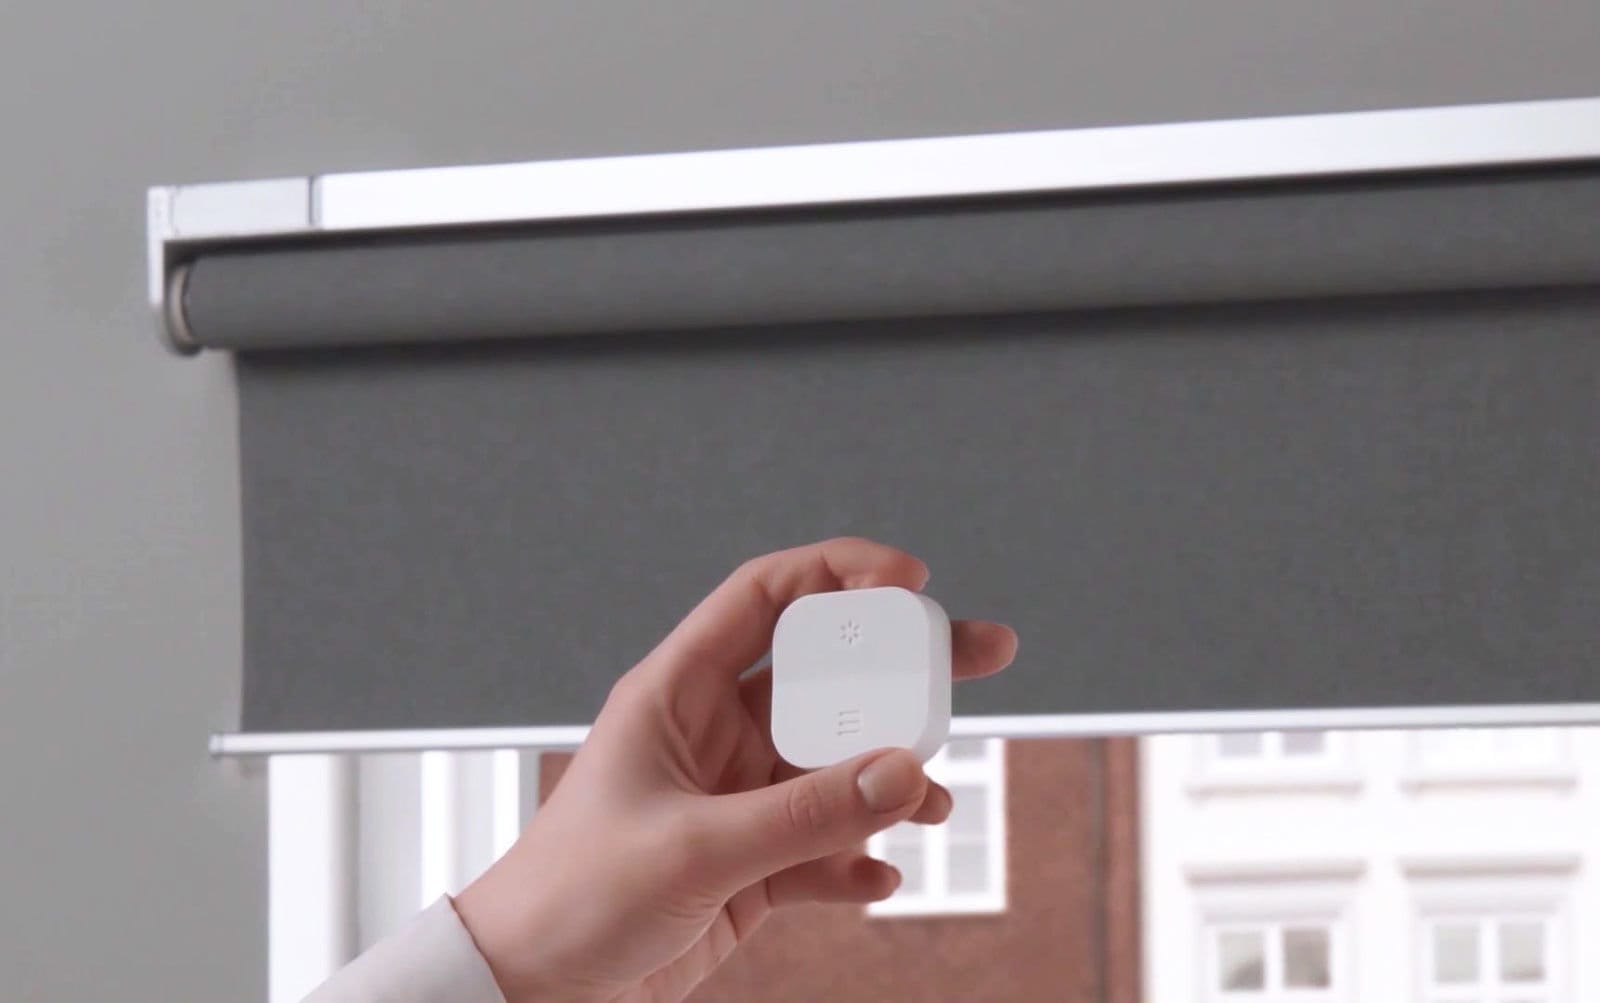 IKEA begins selling its FYRTUR smart blinds in some US stores